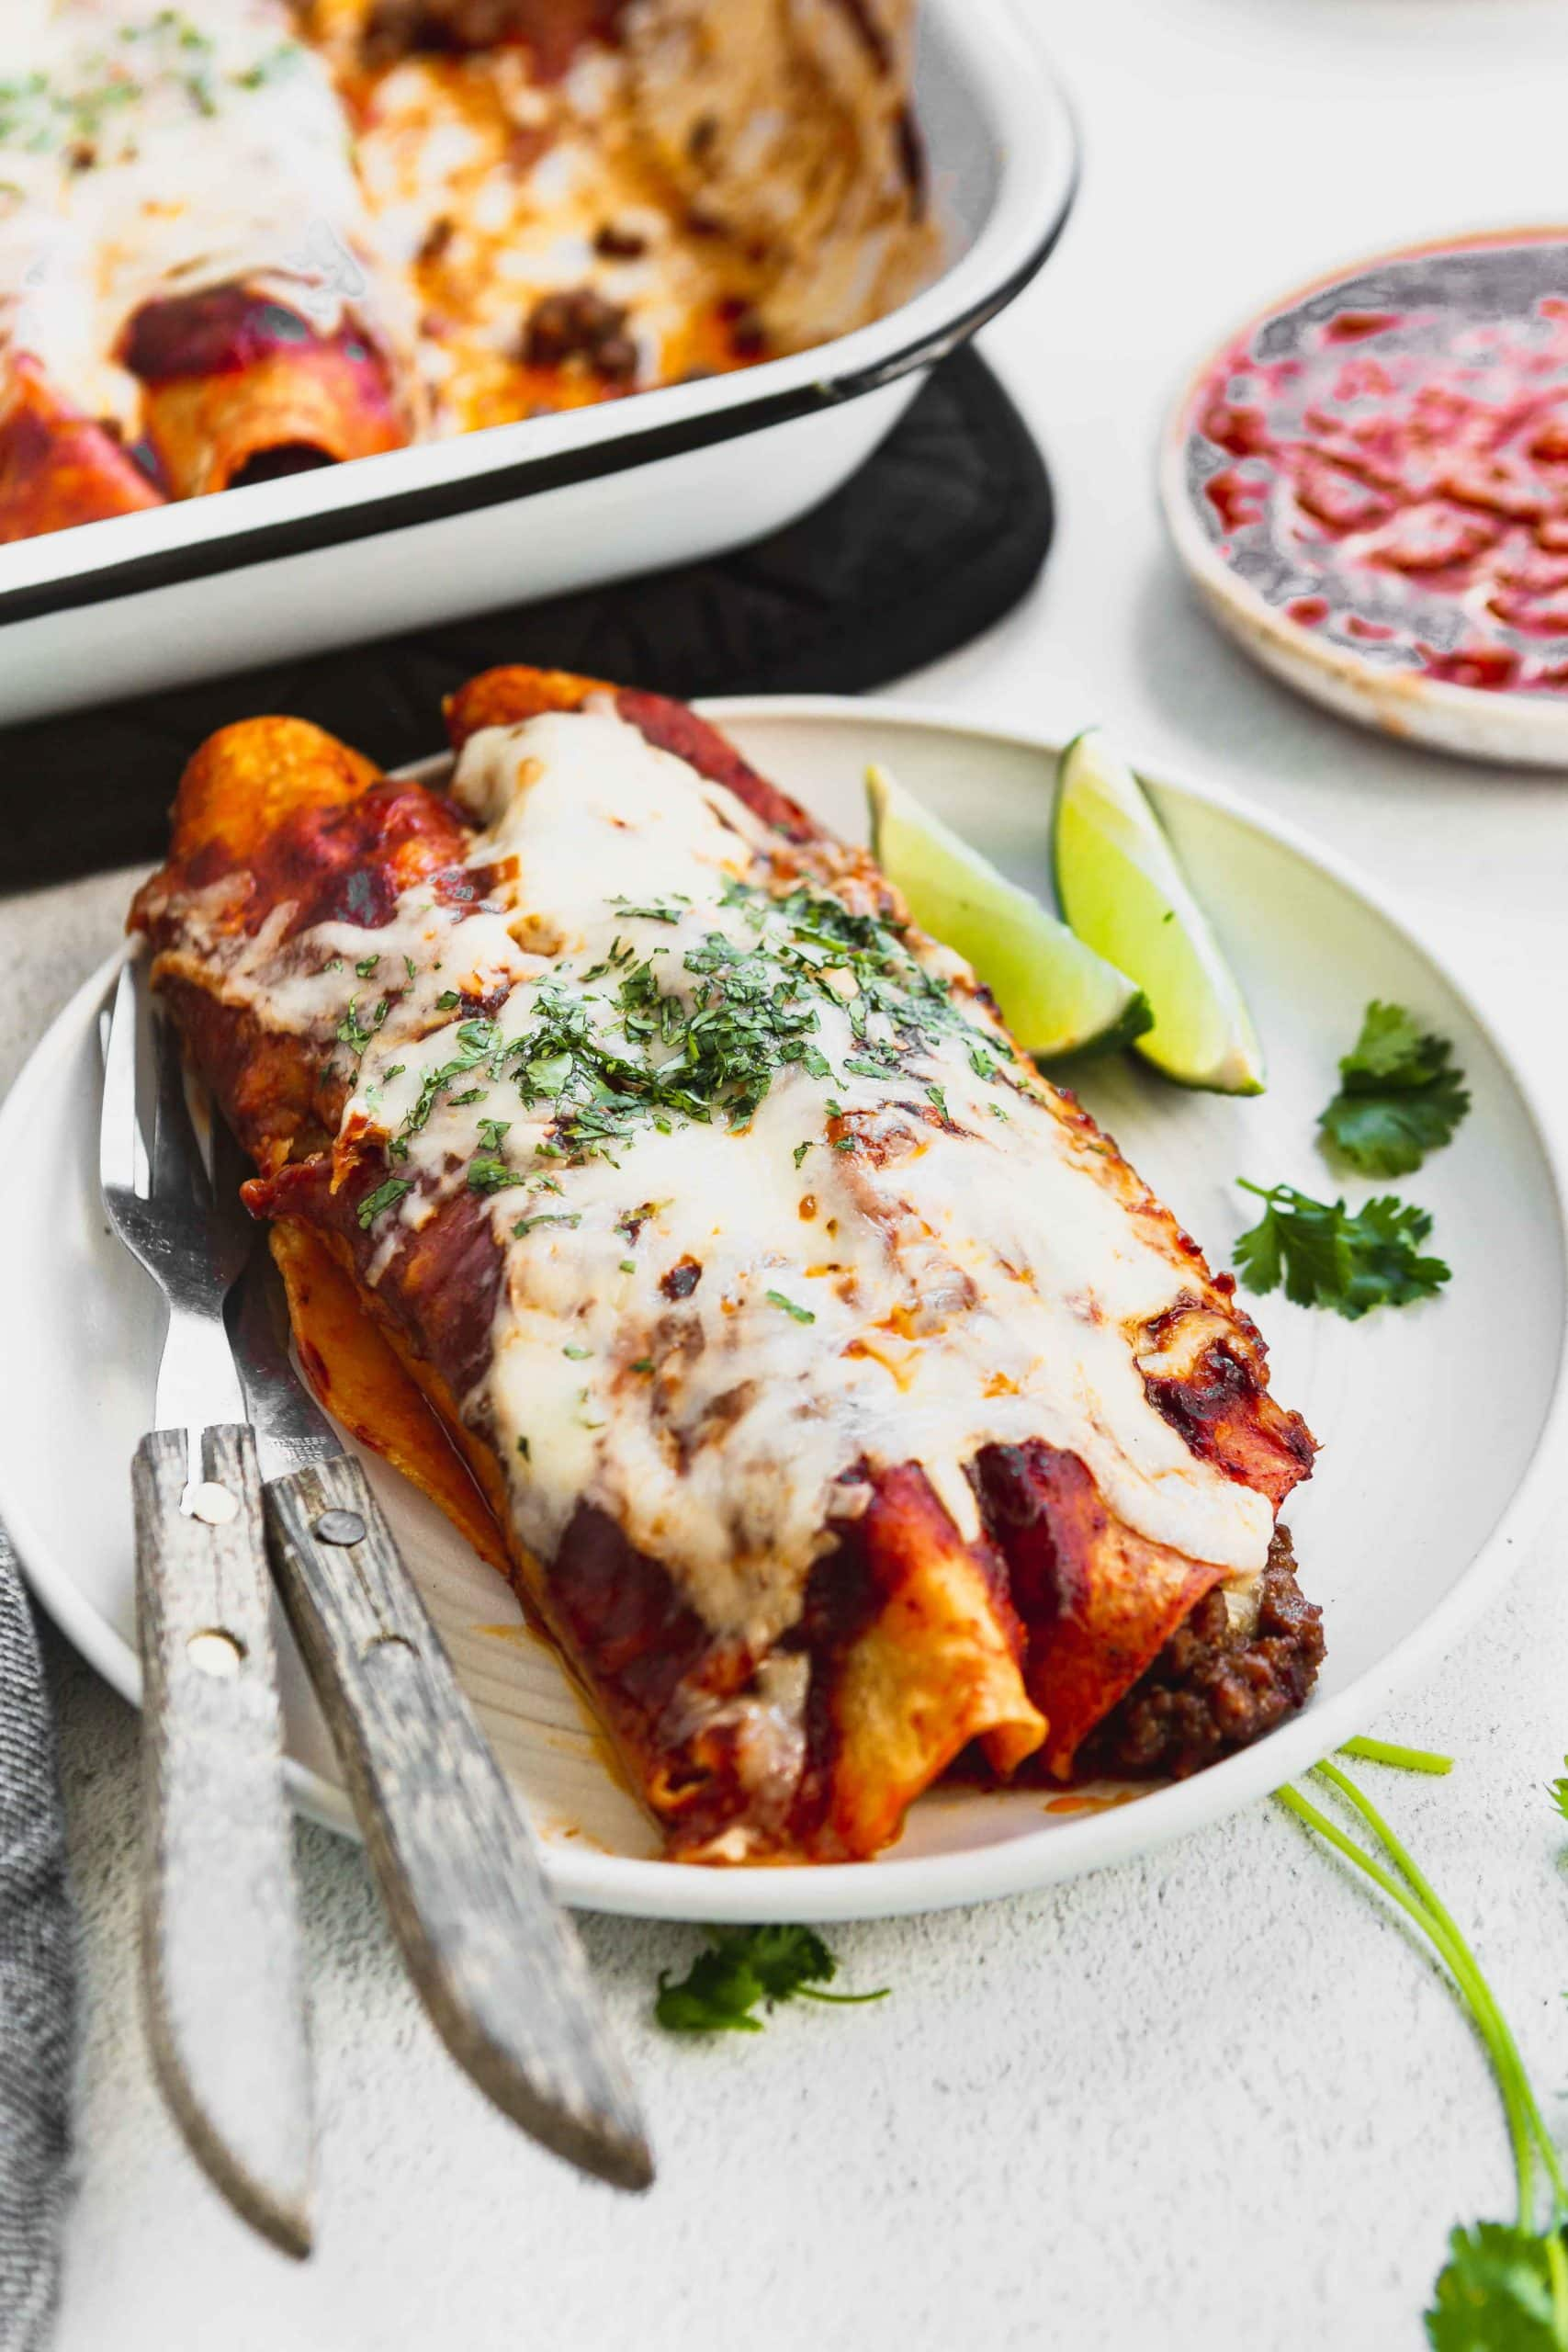 A photo of two ground beef enchiladas on a white plate with two lime wedges on the side.